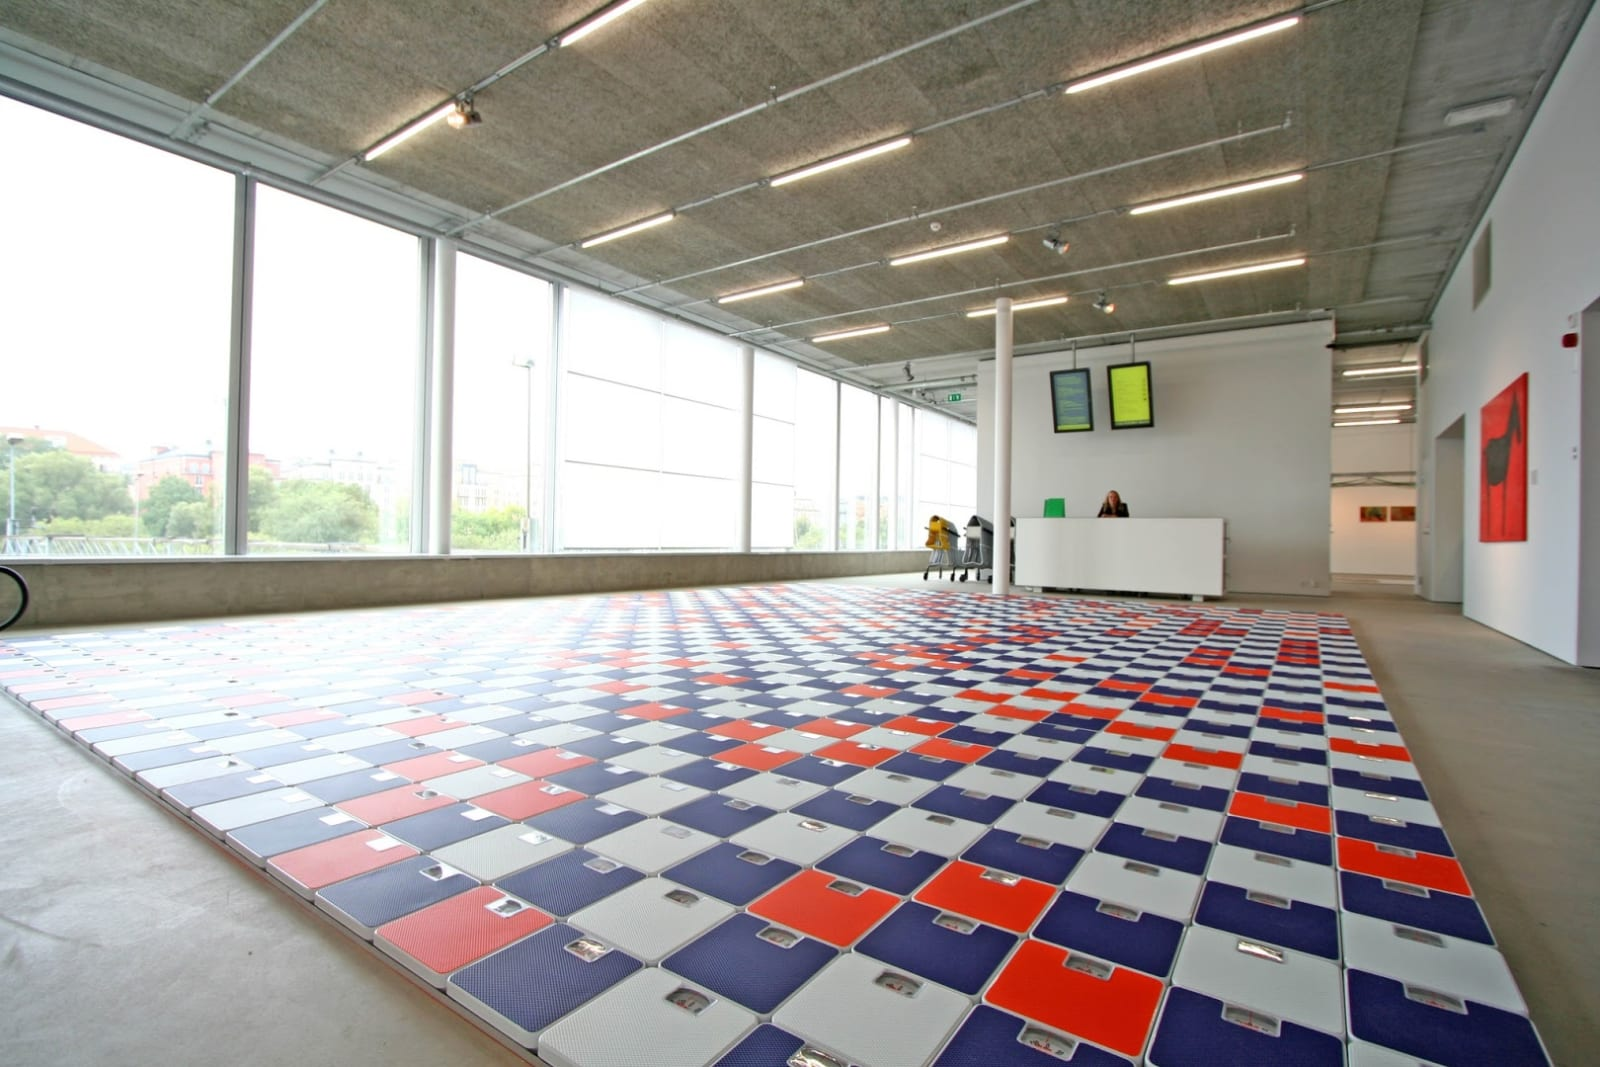 Jacob Dahlgren Heaven is a place on earth, Installation view, Bonniers konsthall, Stockholm, Sweden, 2006